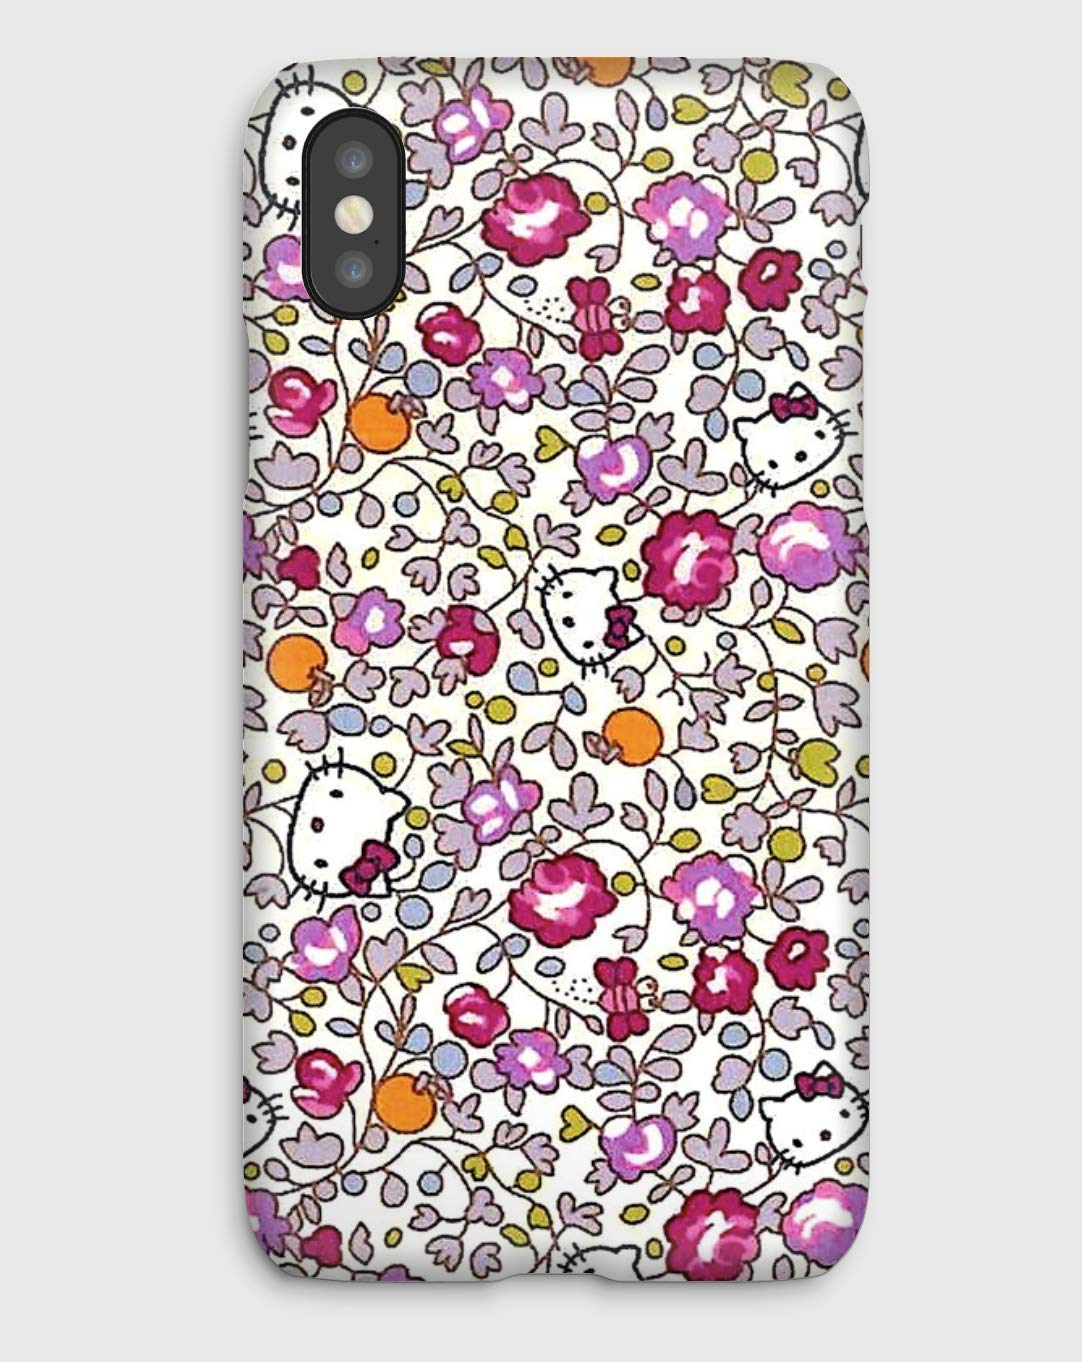 Hello Kitty, coque pour iPhone XS, XS Max, XR, X, 8, 8+, 7, 7+, 6S, 6, 6S+, 6+, 5C, 5, 5S, 5SE, 4S, 4,